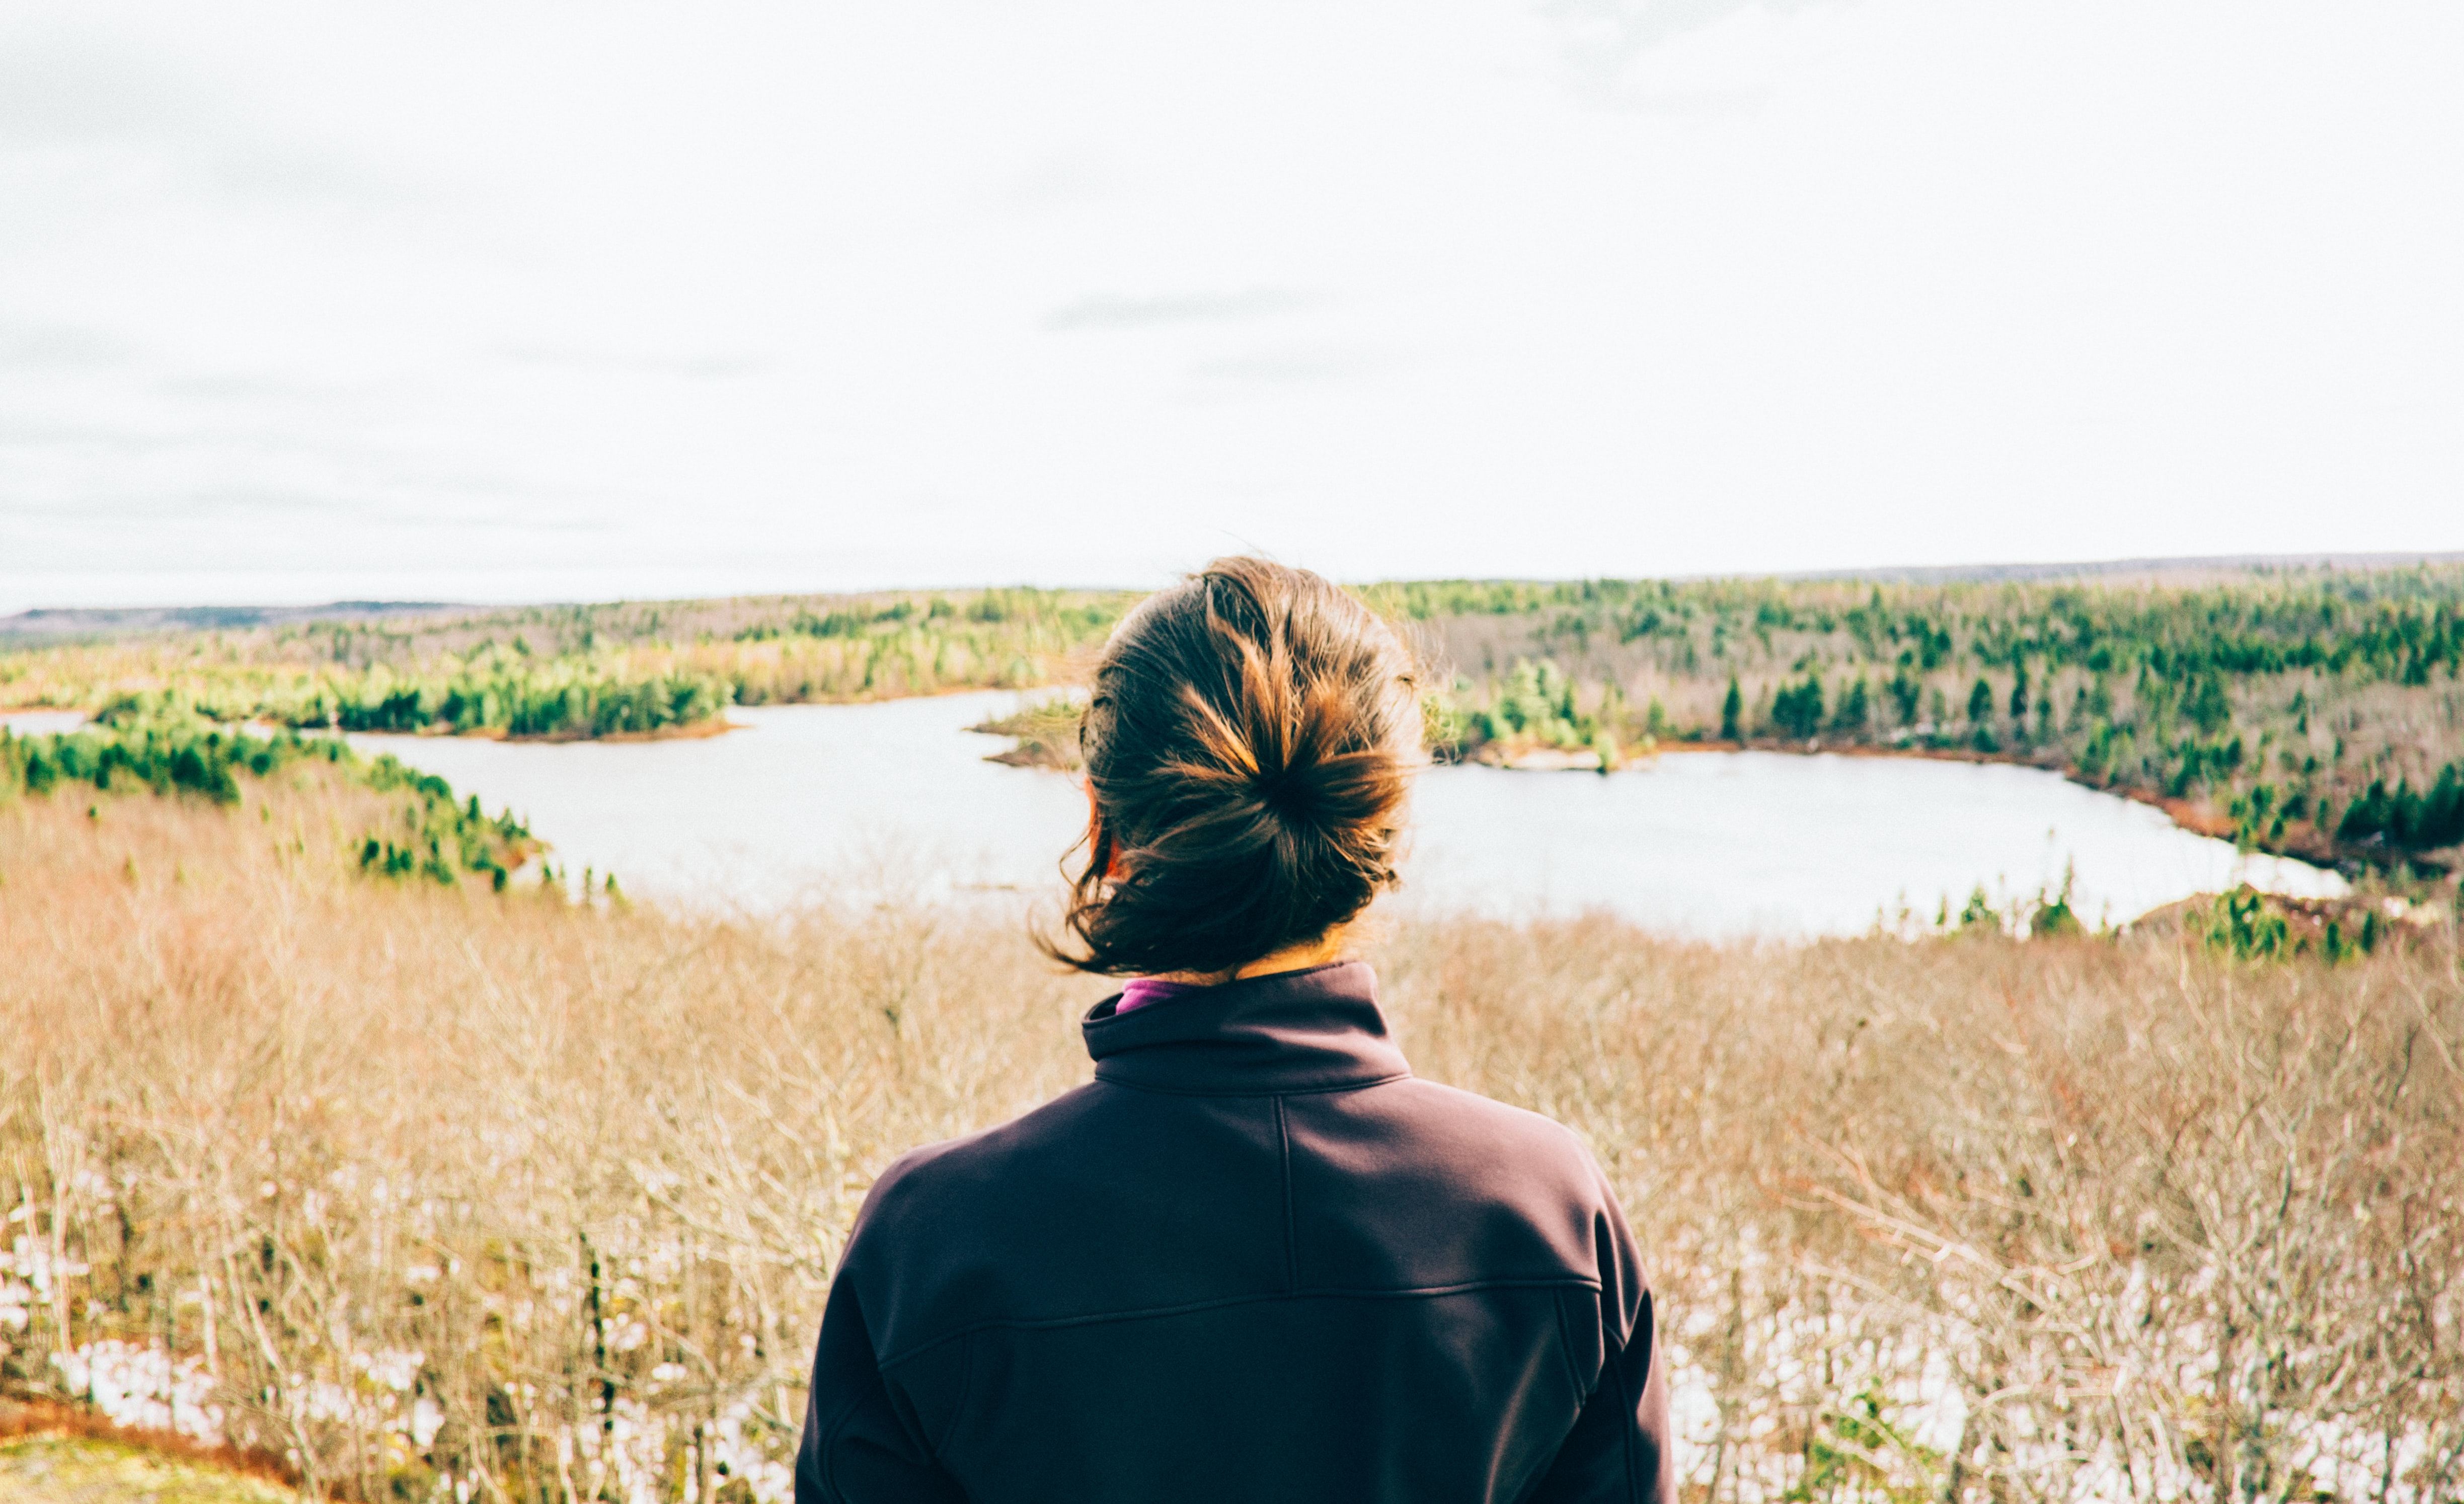 A woman with a ponytail wearing a jacket in a field of grass by a pond in Canada